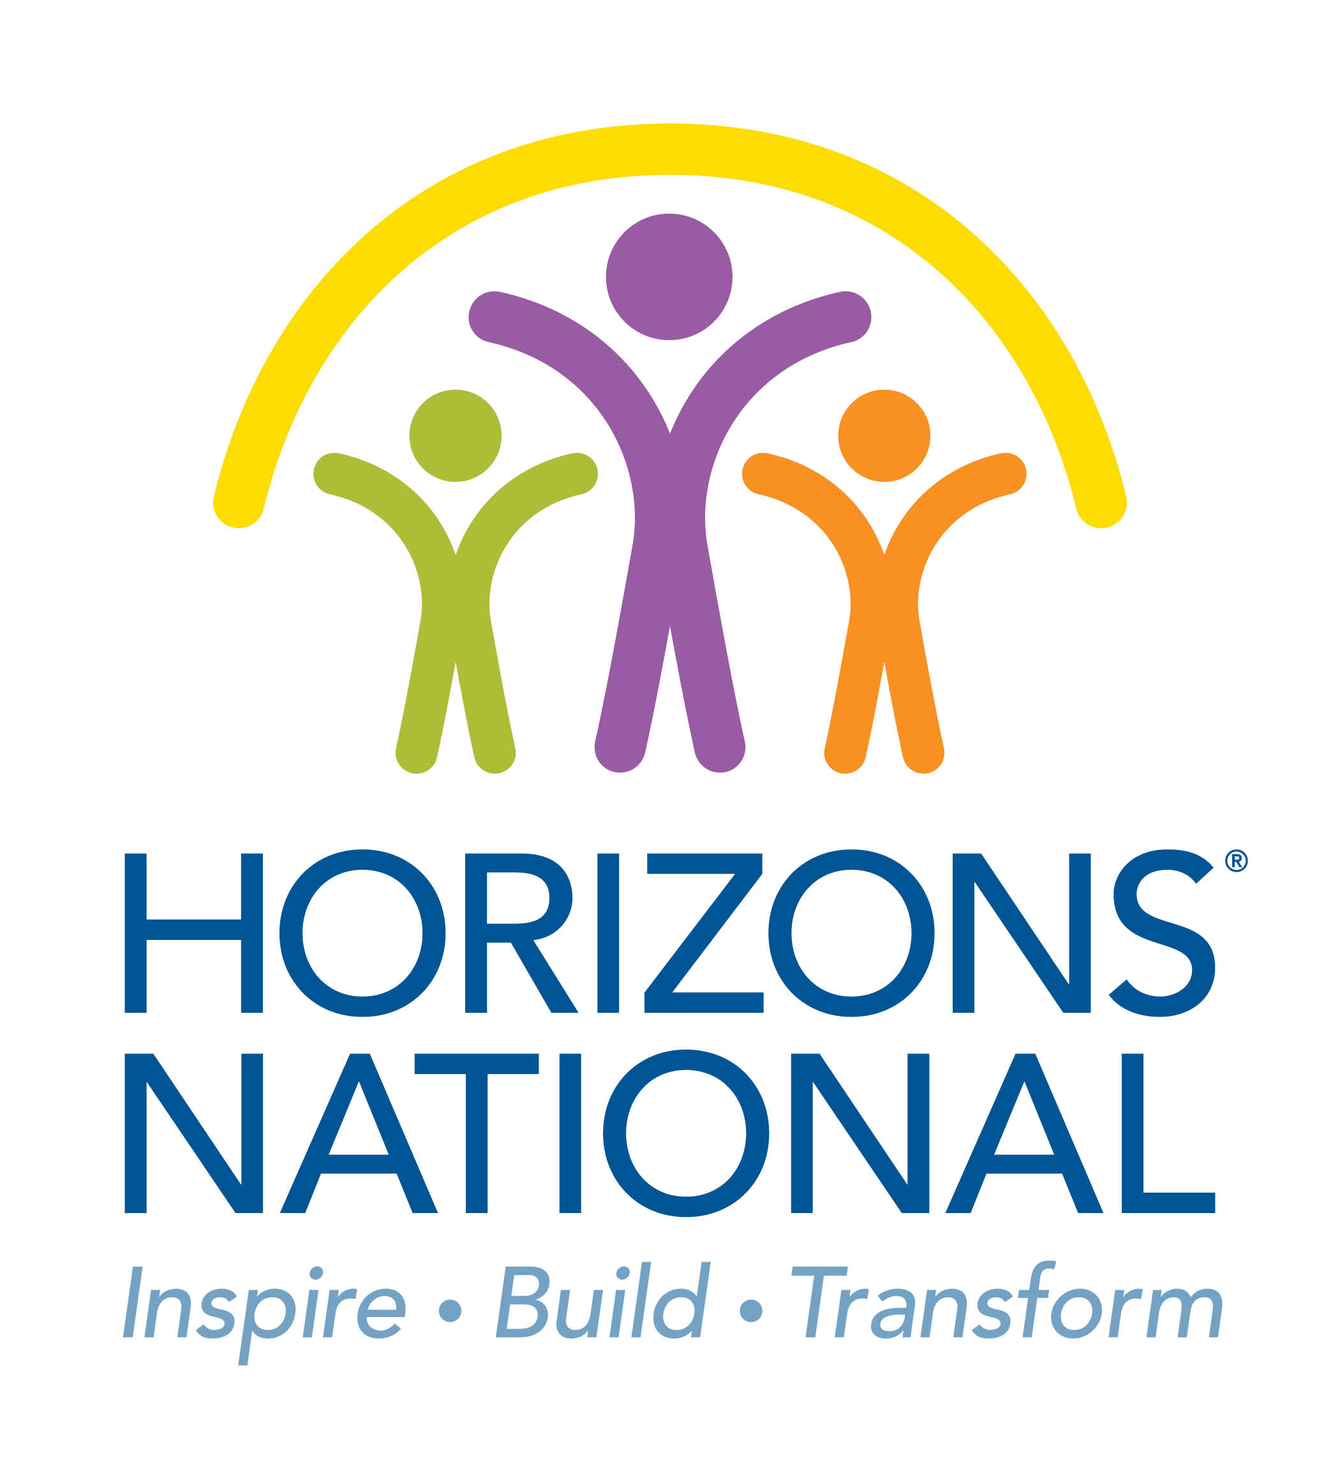 10 Days of Giving to Horizons